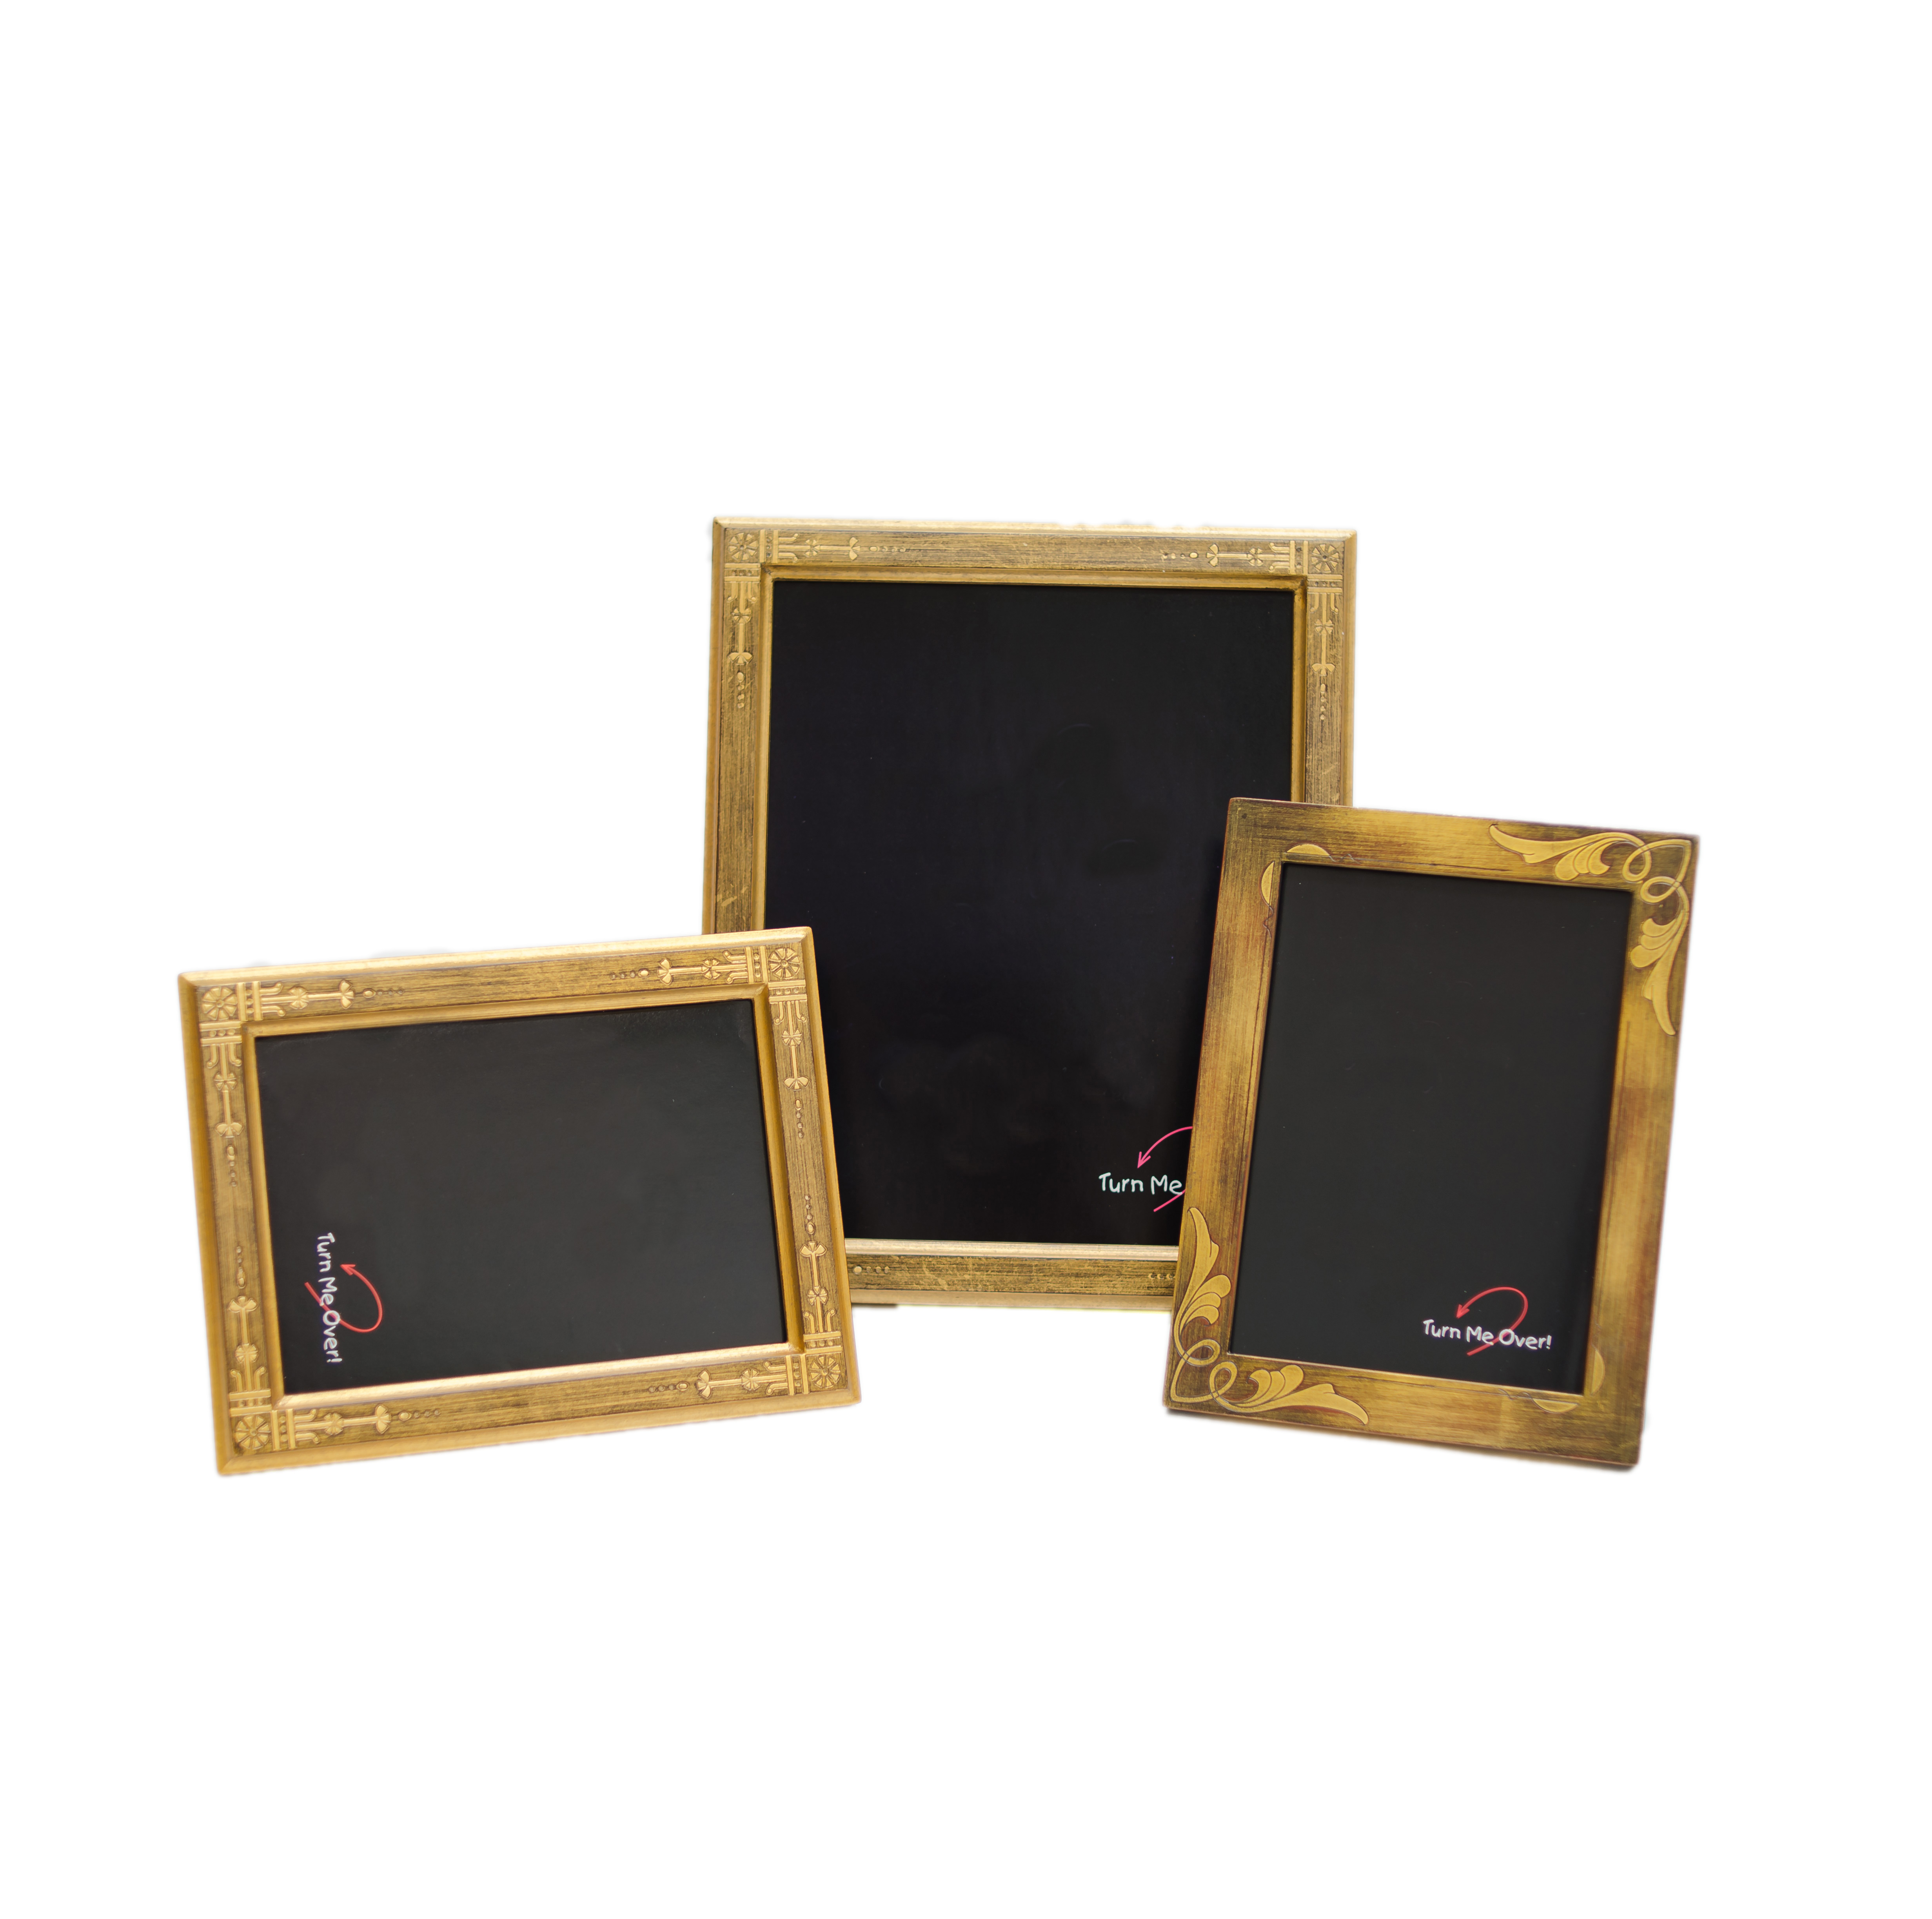 The studio shop photo frames photo frames from simple to museum quality carved wood decorated glass bike chain glitter leather and exquisite gold leaf frames too leather jeuxipadfo Images